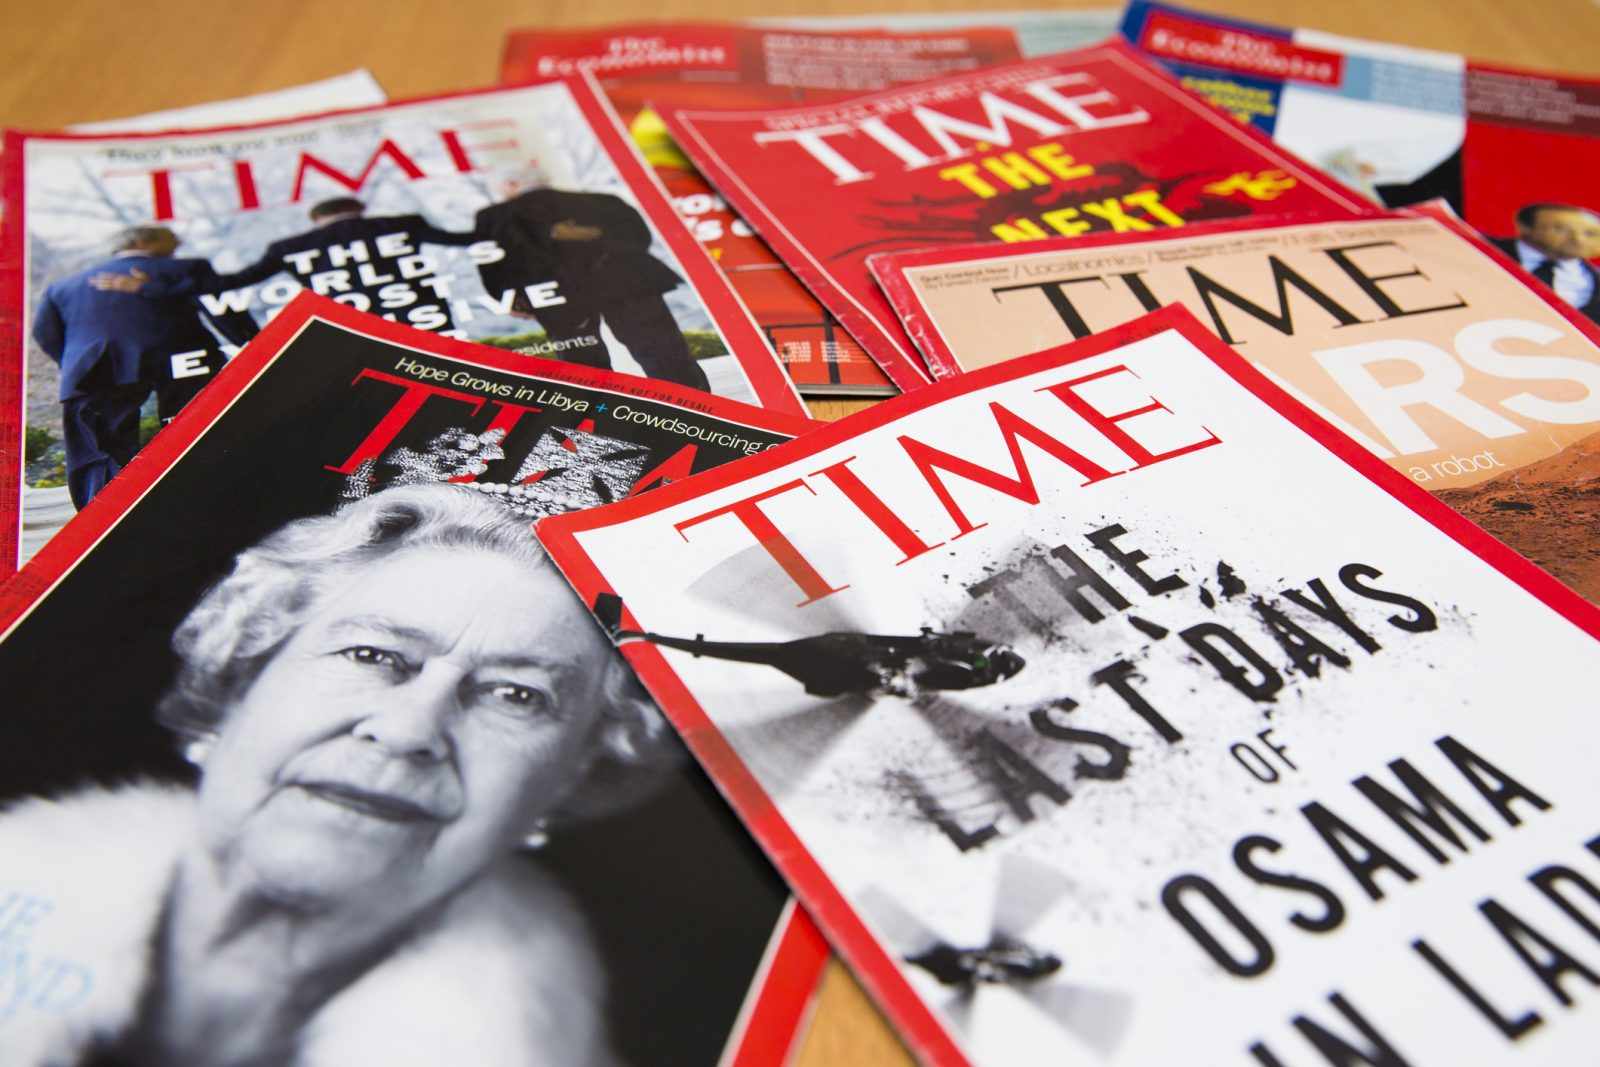 A pile of Time Magazines spread out over a table.